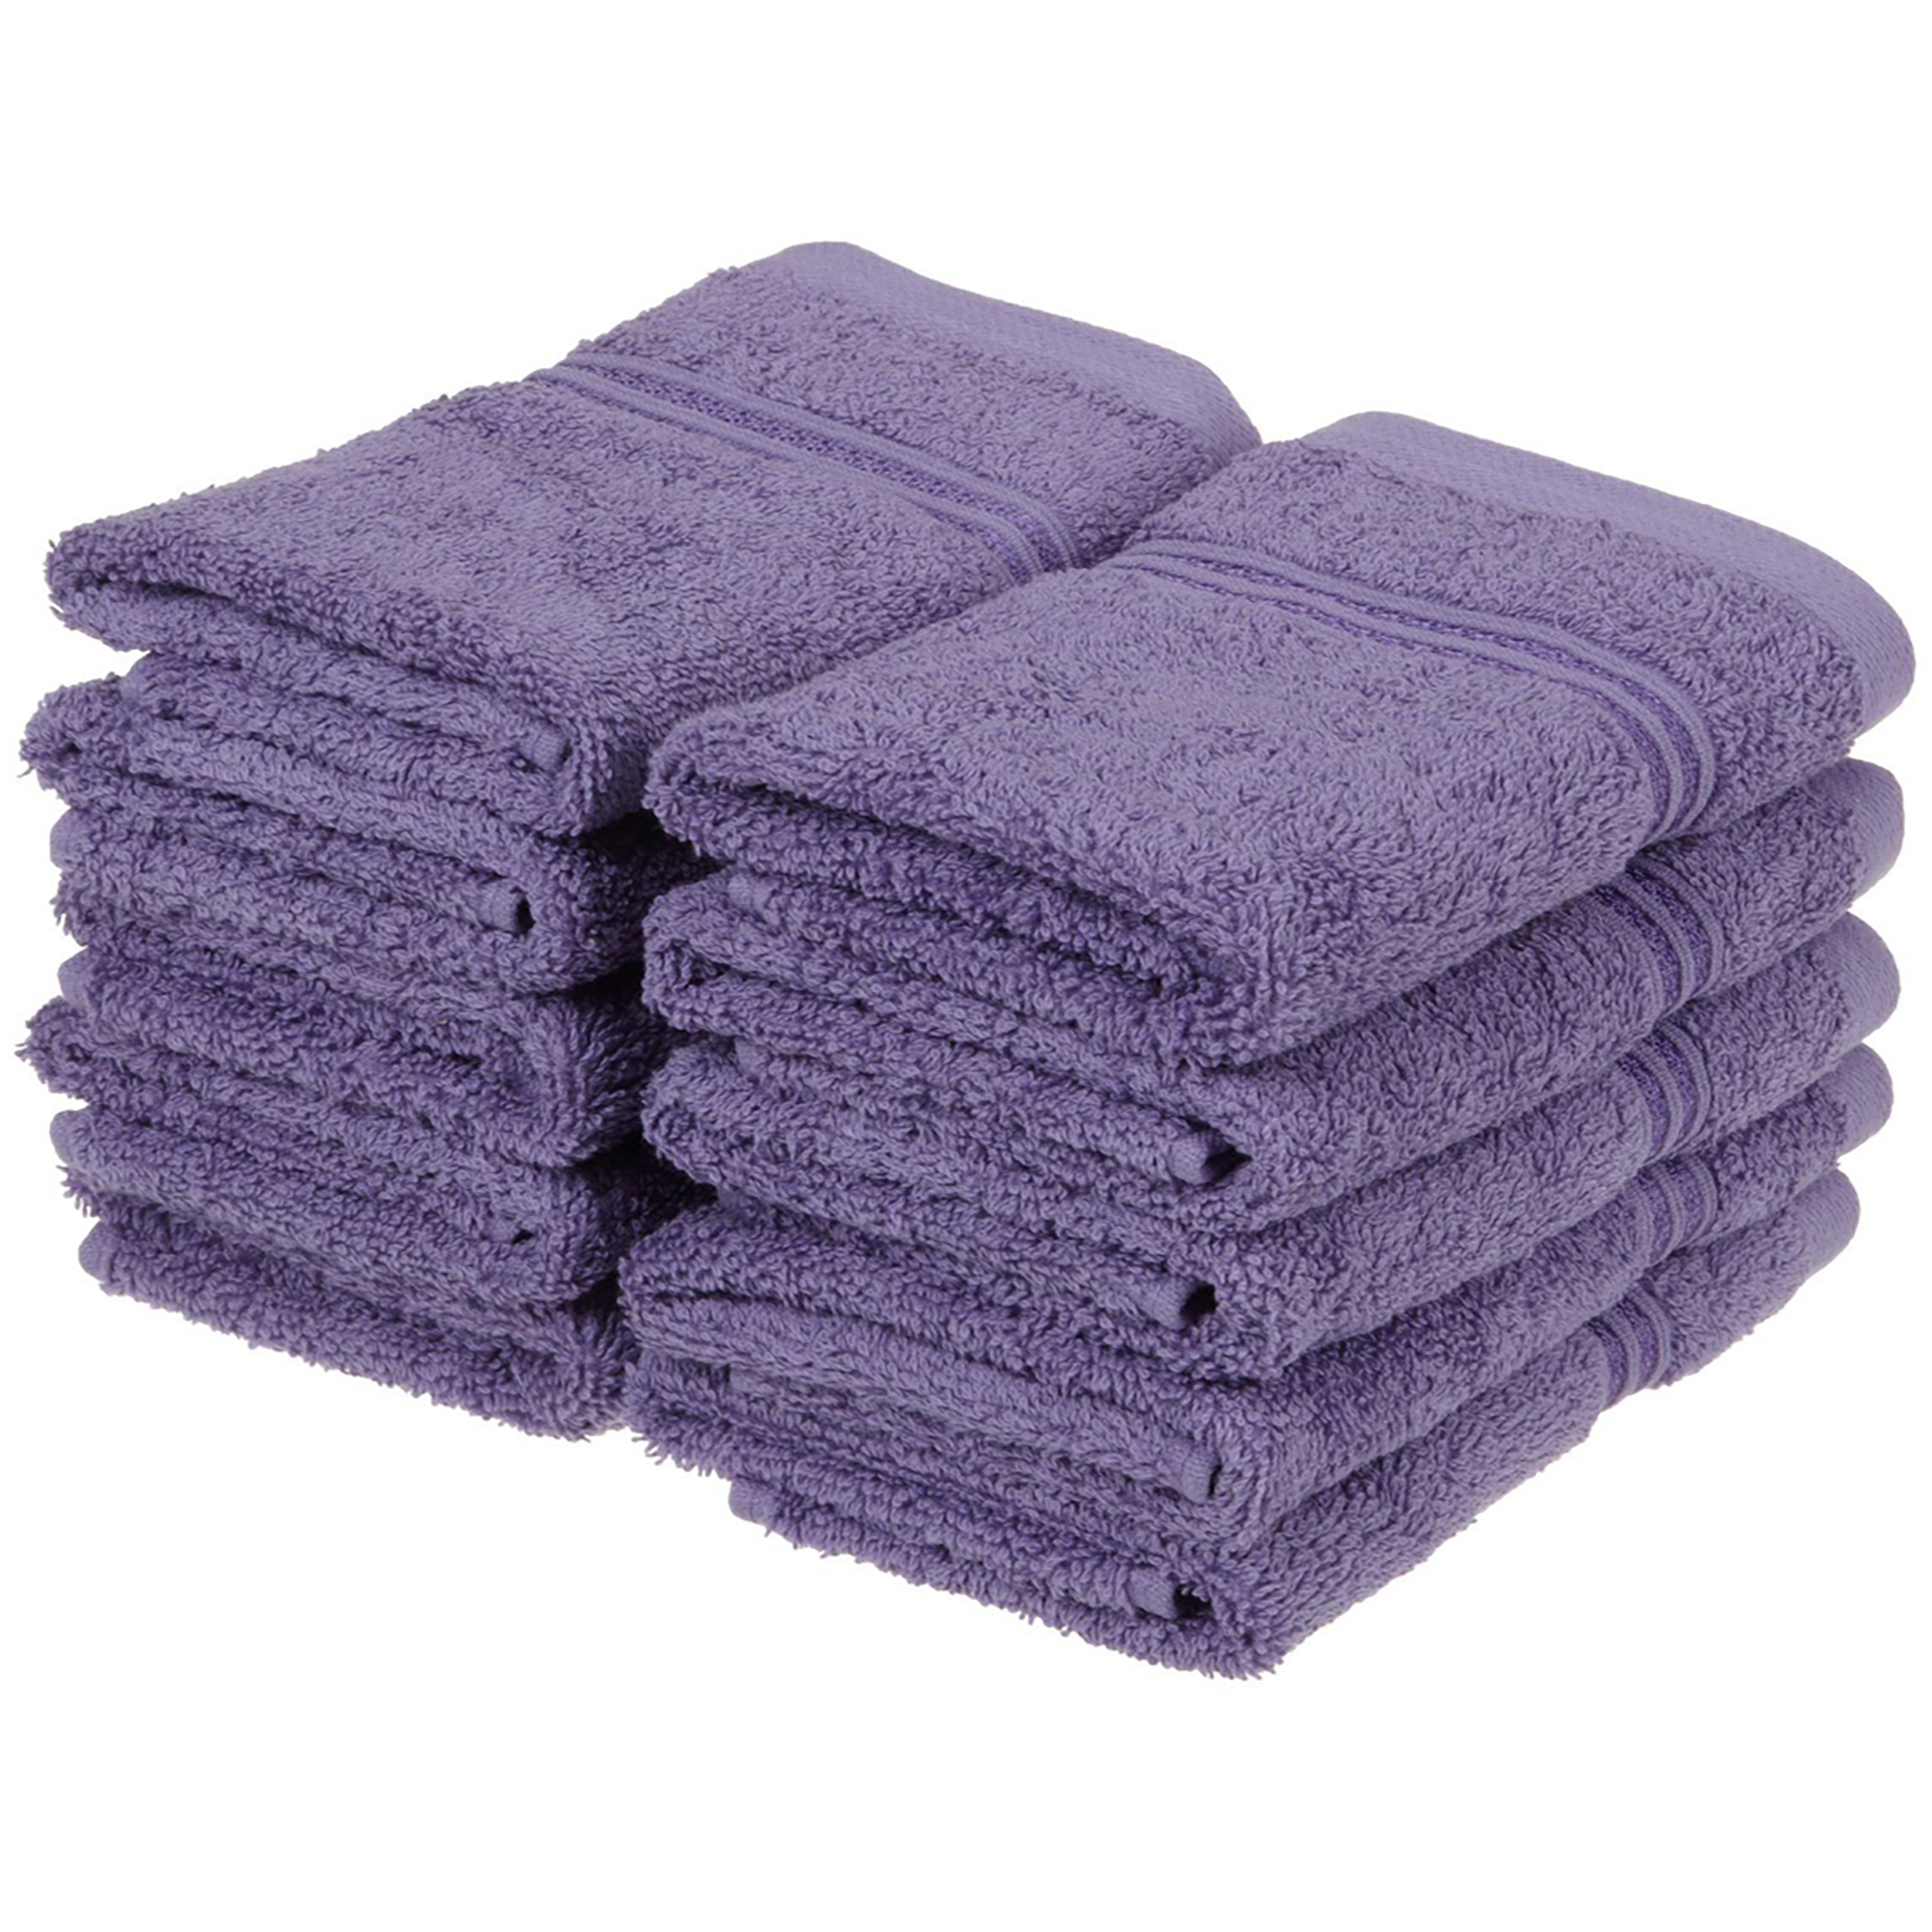 Superior 600GSM Egyptian Quality Cotton 10-Piece Face Towel Set